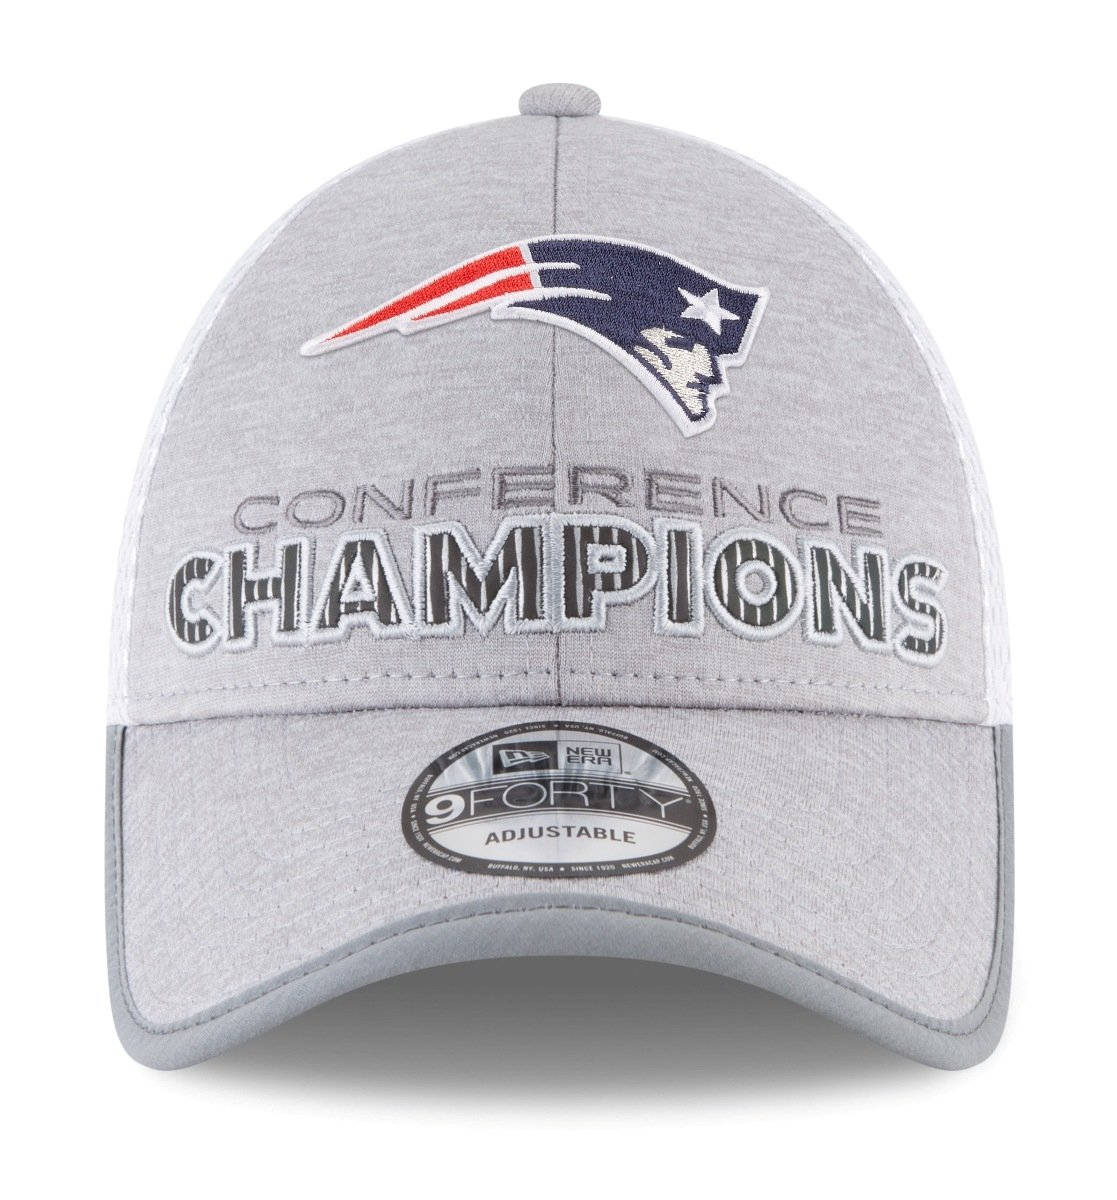 Buy Afc Champions Now!